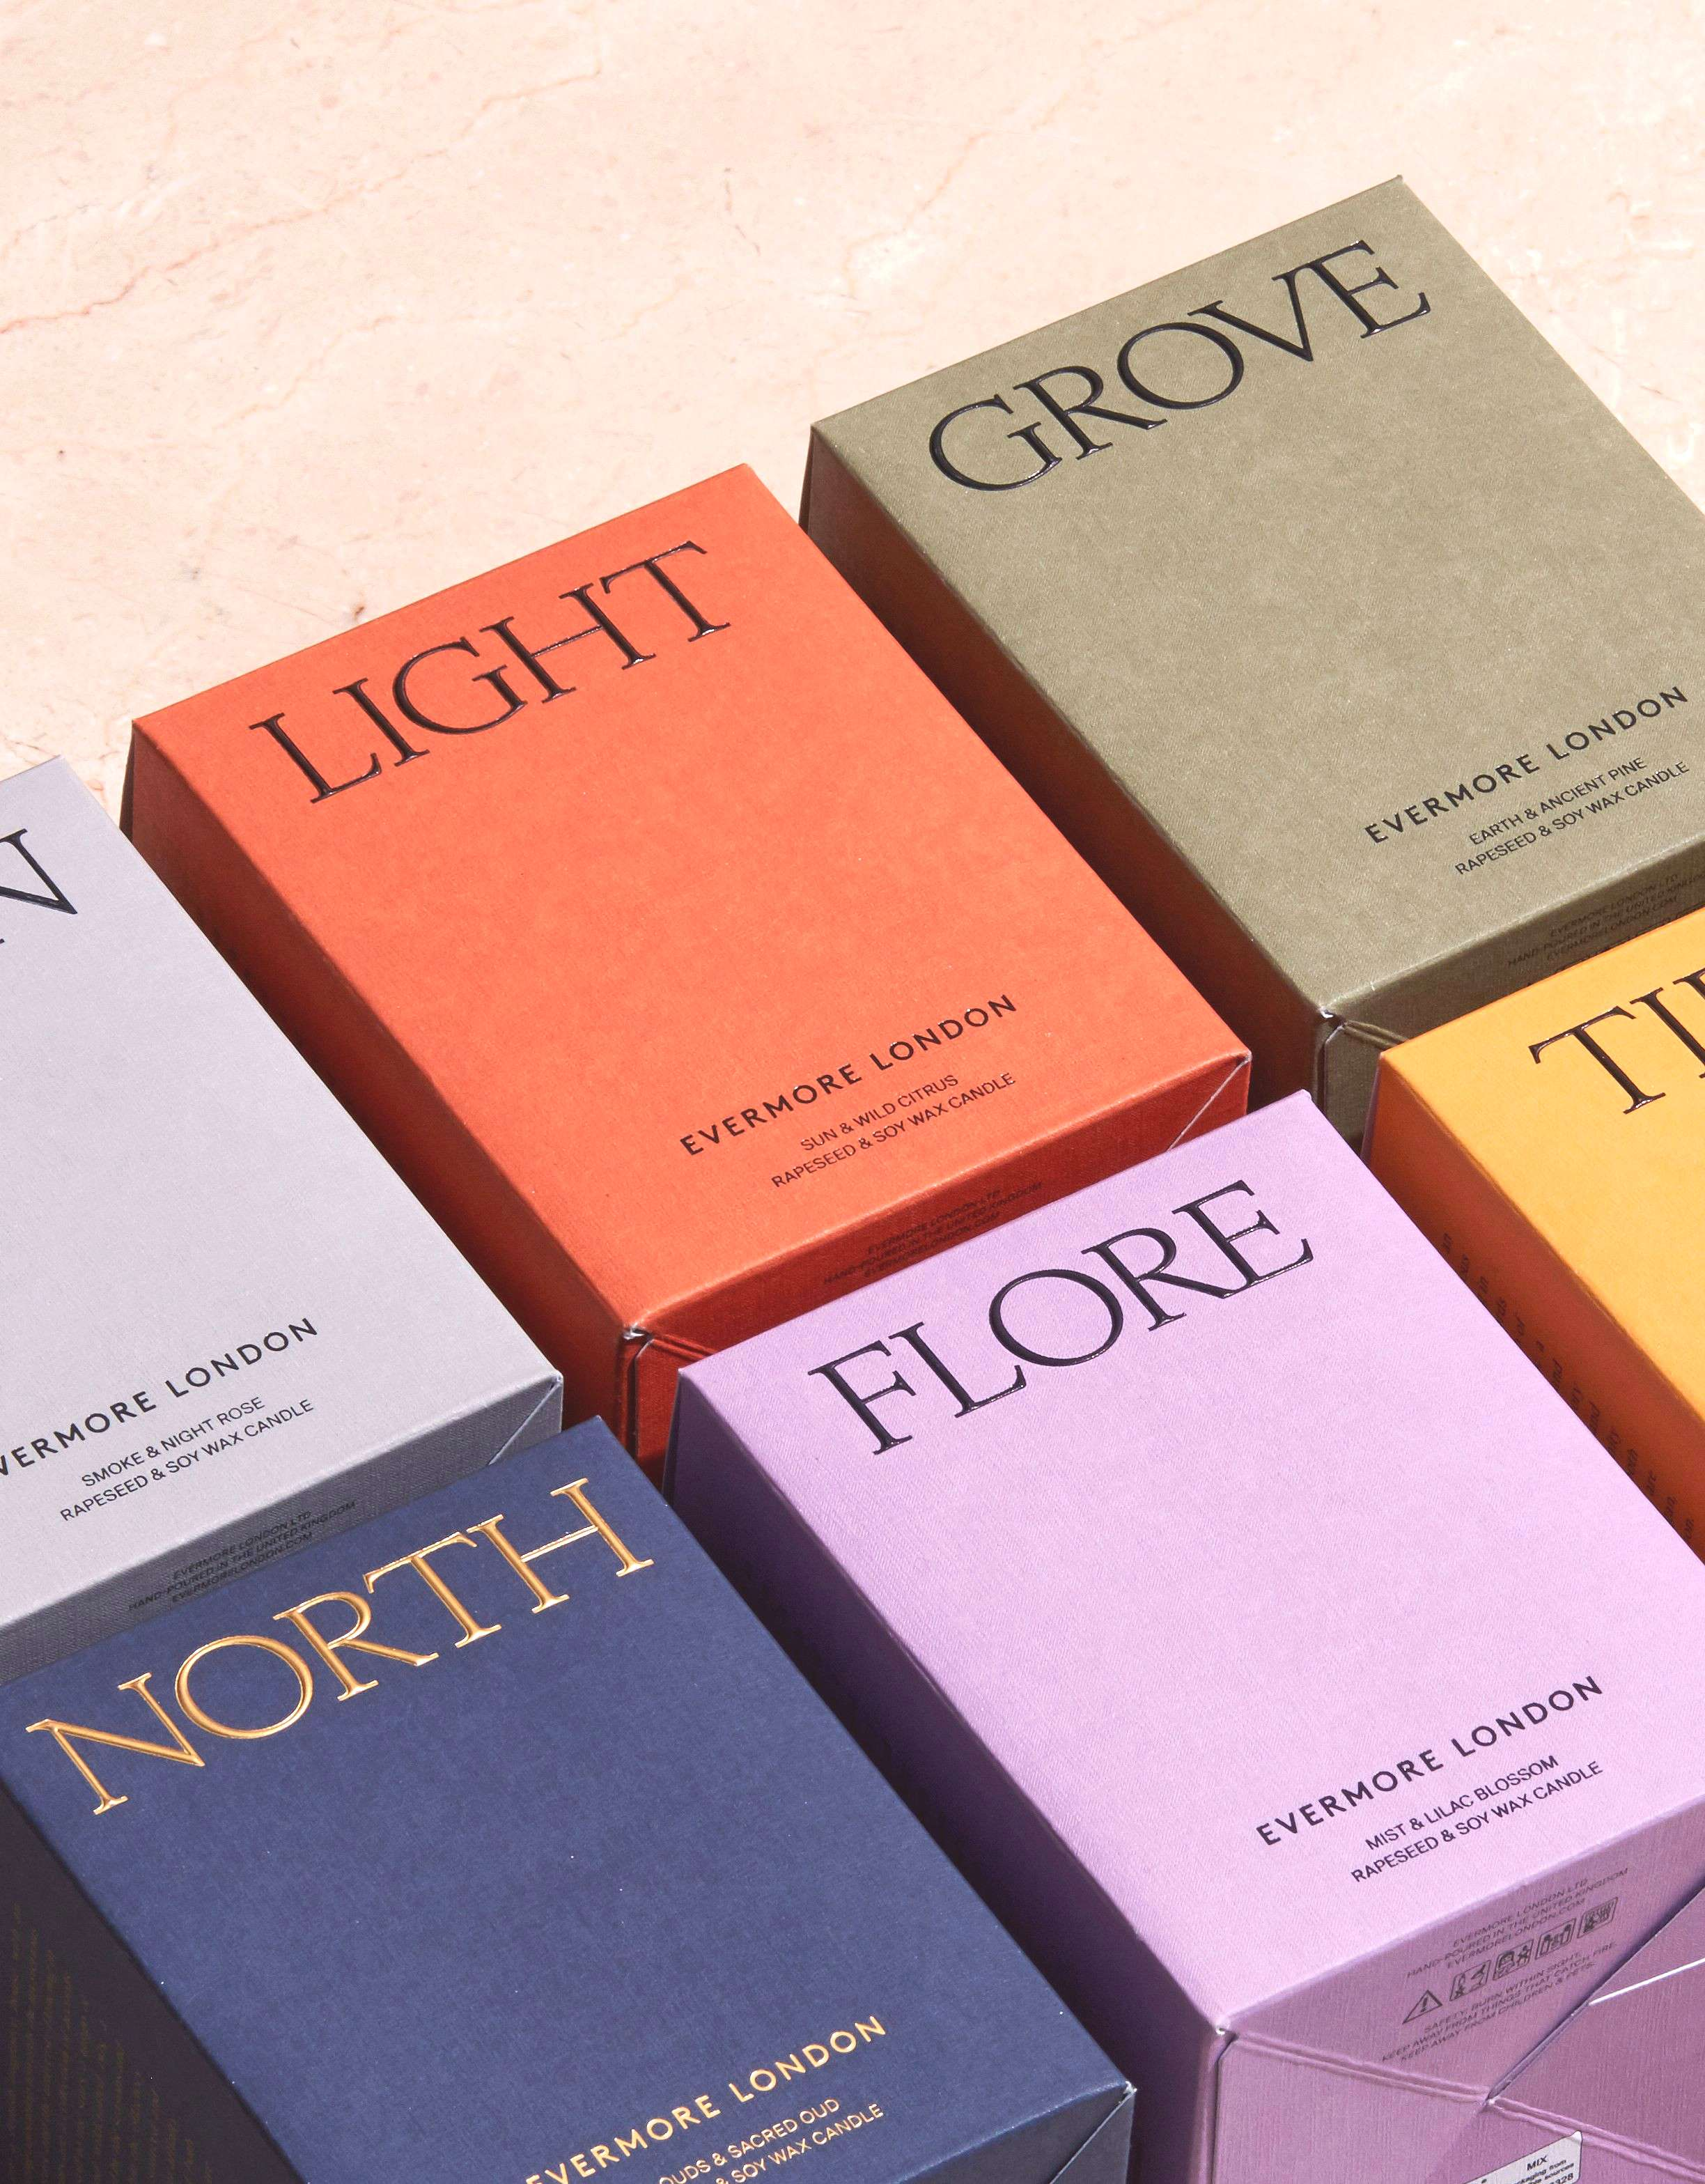 Colour Packaging Evermore London Candle Boxes